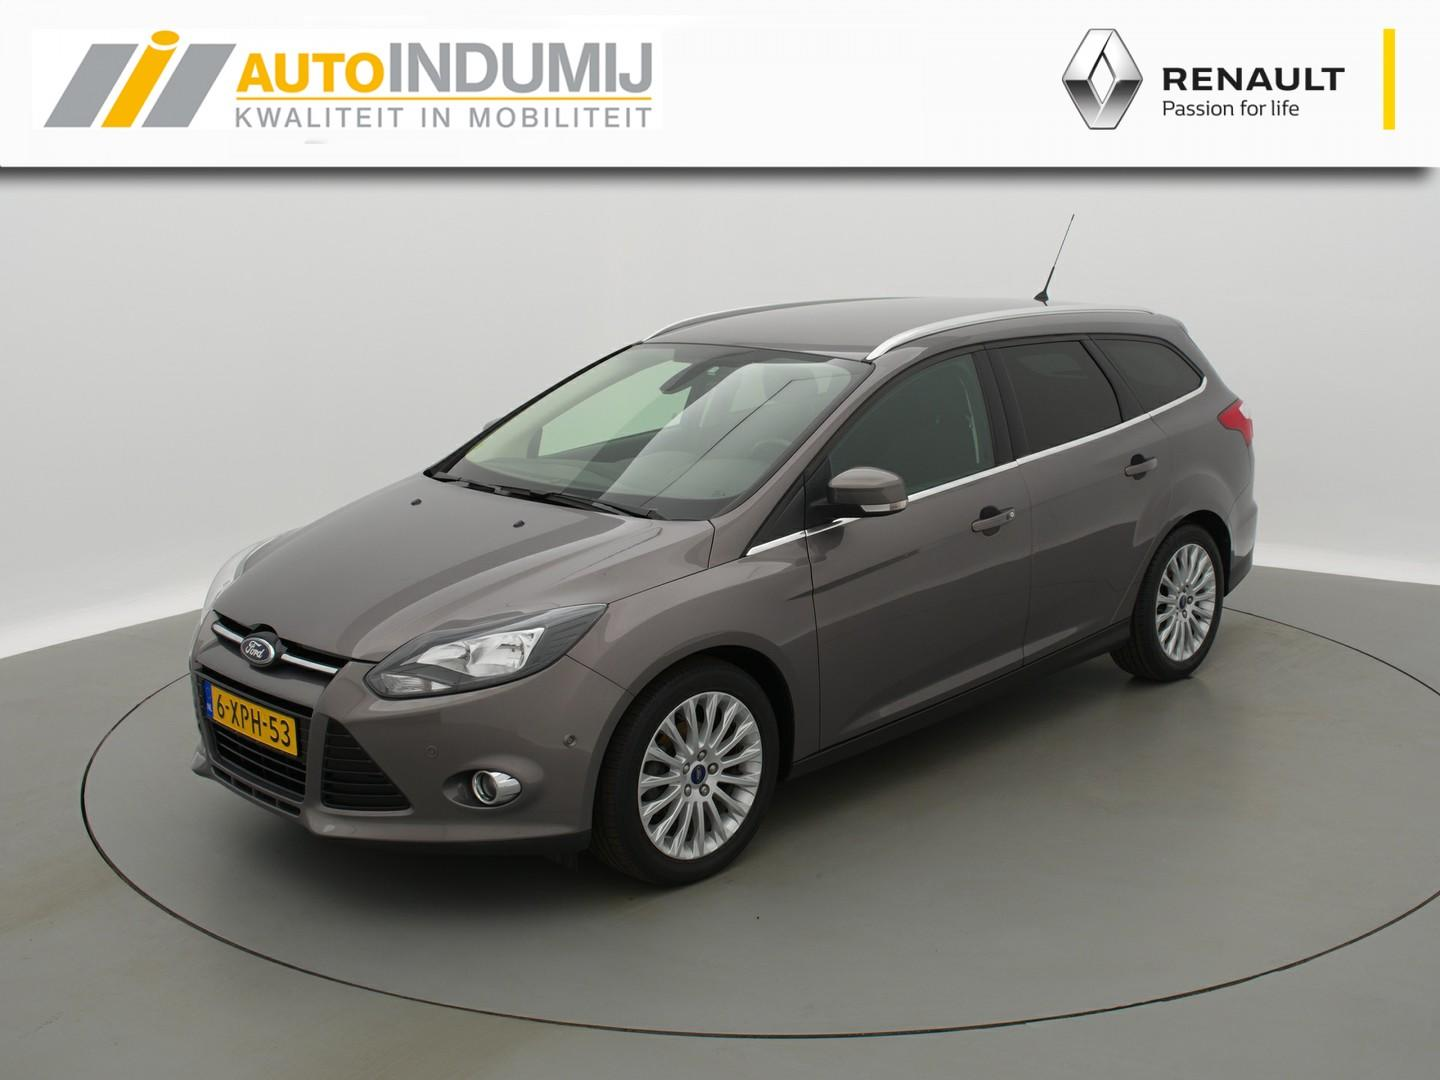 Ford Focus Wagon 1.0 126pk ecoboost edition plus / navigatie / climate control / cruise control /